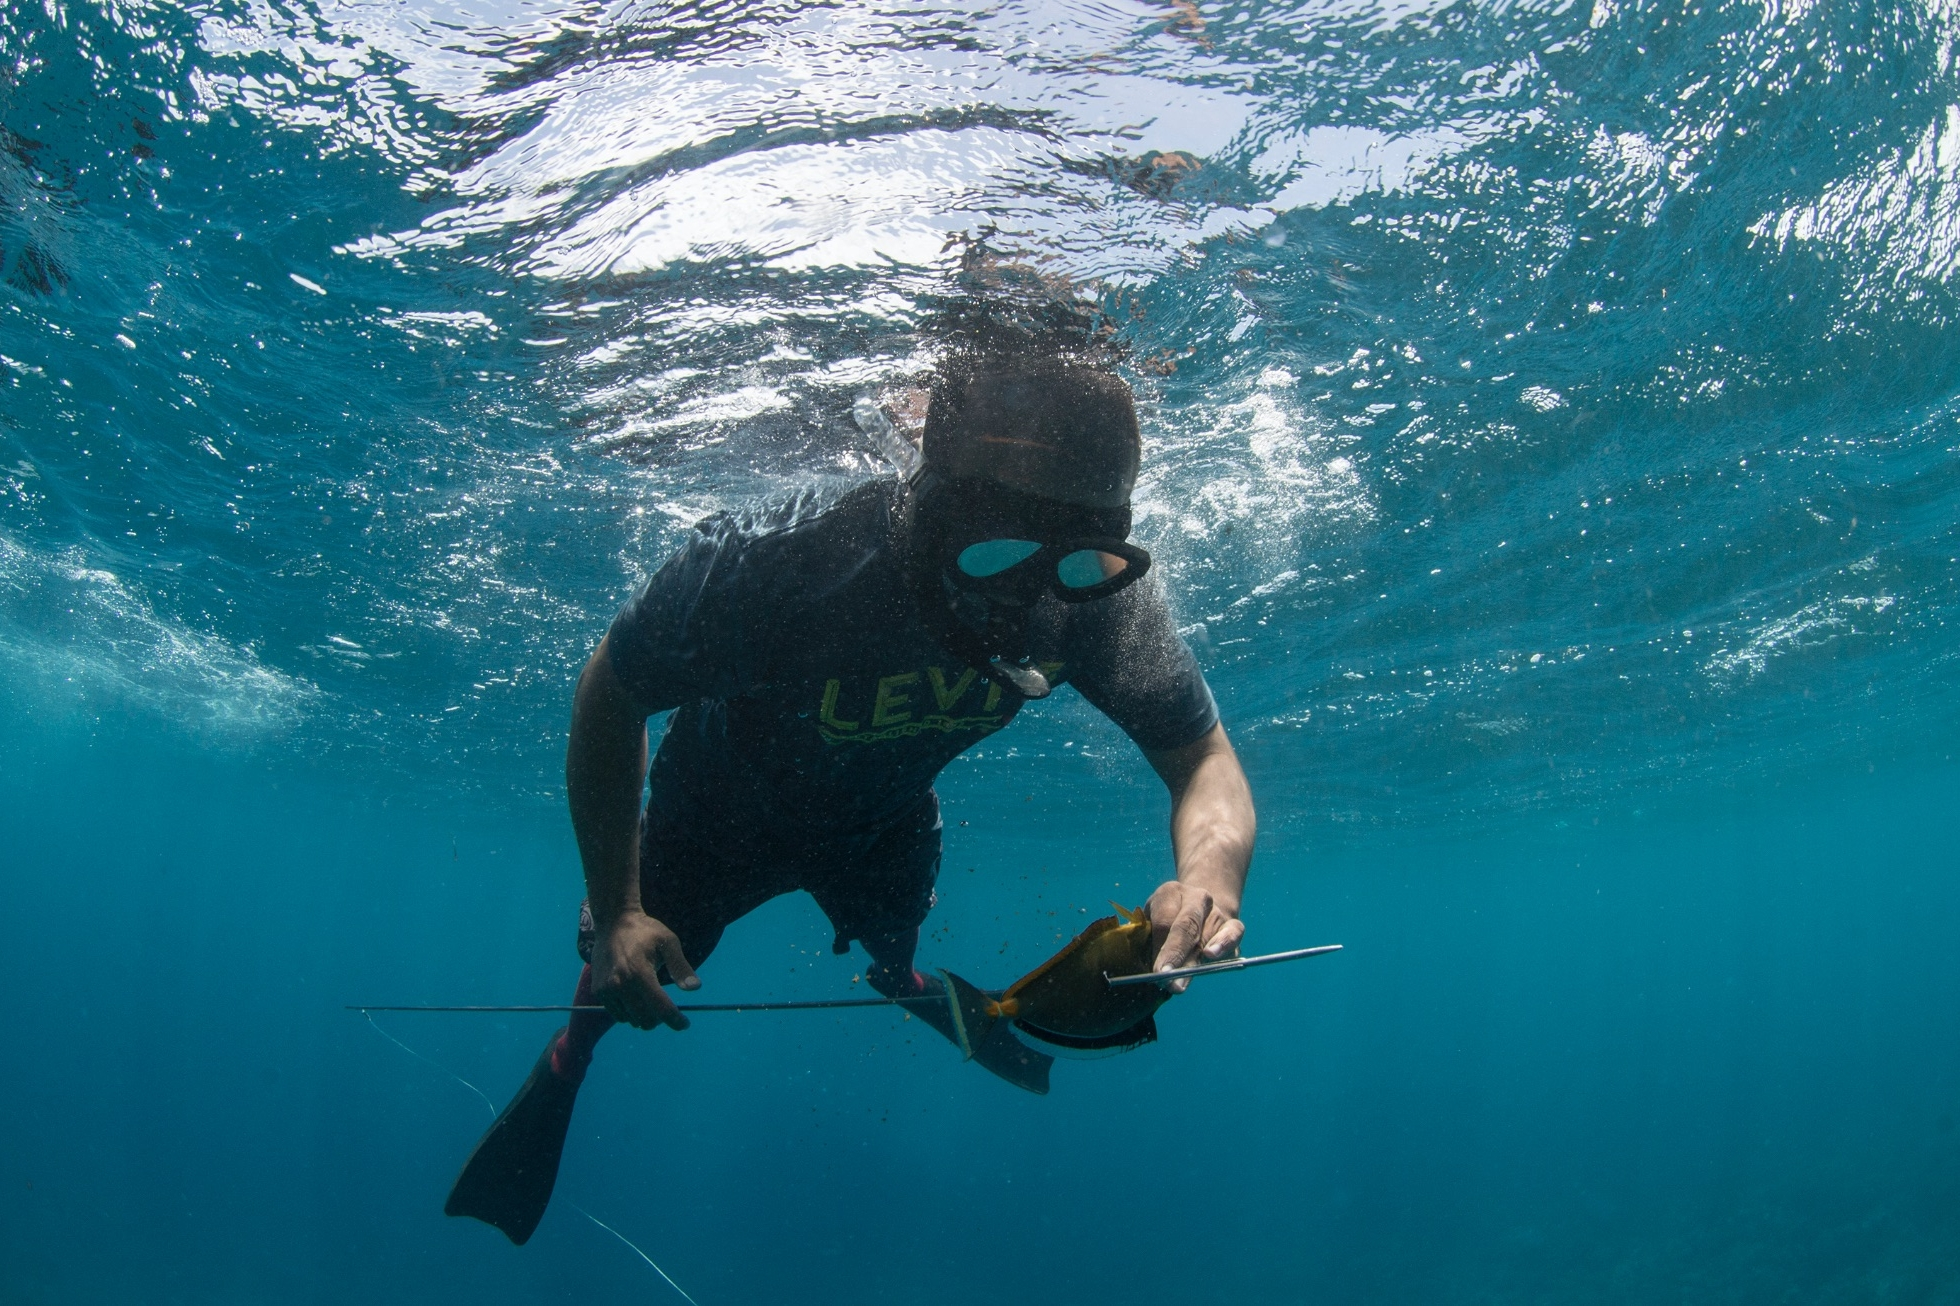 SPEARFISHER, PALAU CREDIT: THE OCEAN AGENCY / coral reef image bank